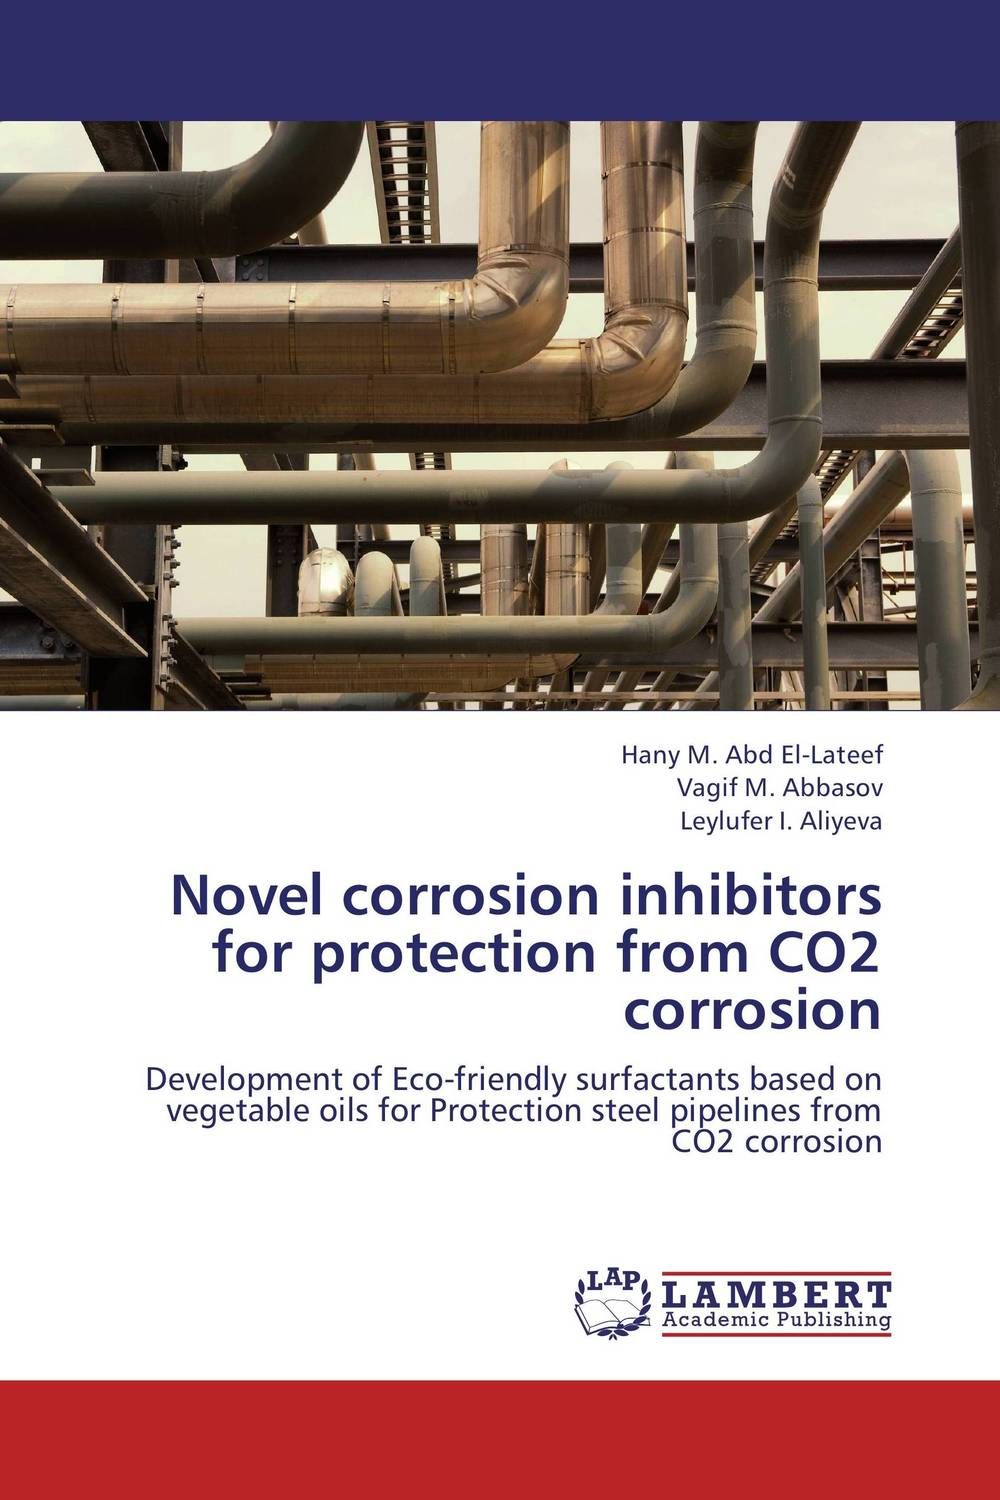 Novel corrosion inhibitors for protection from CO2 corrosion